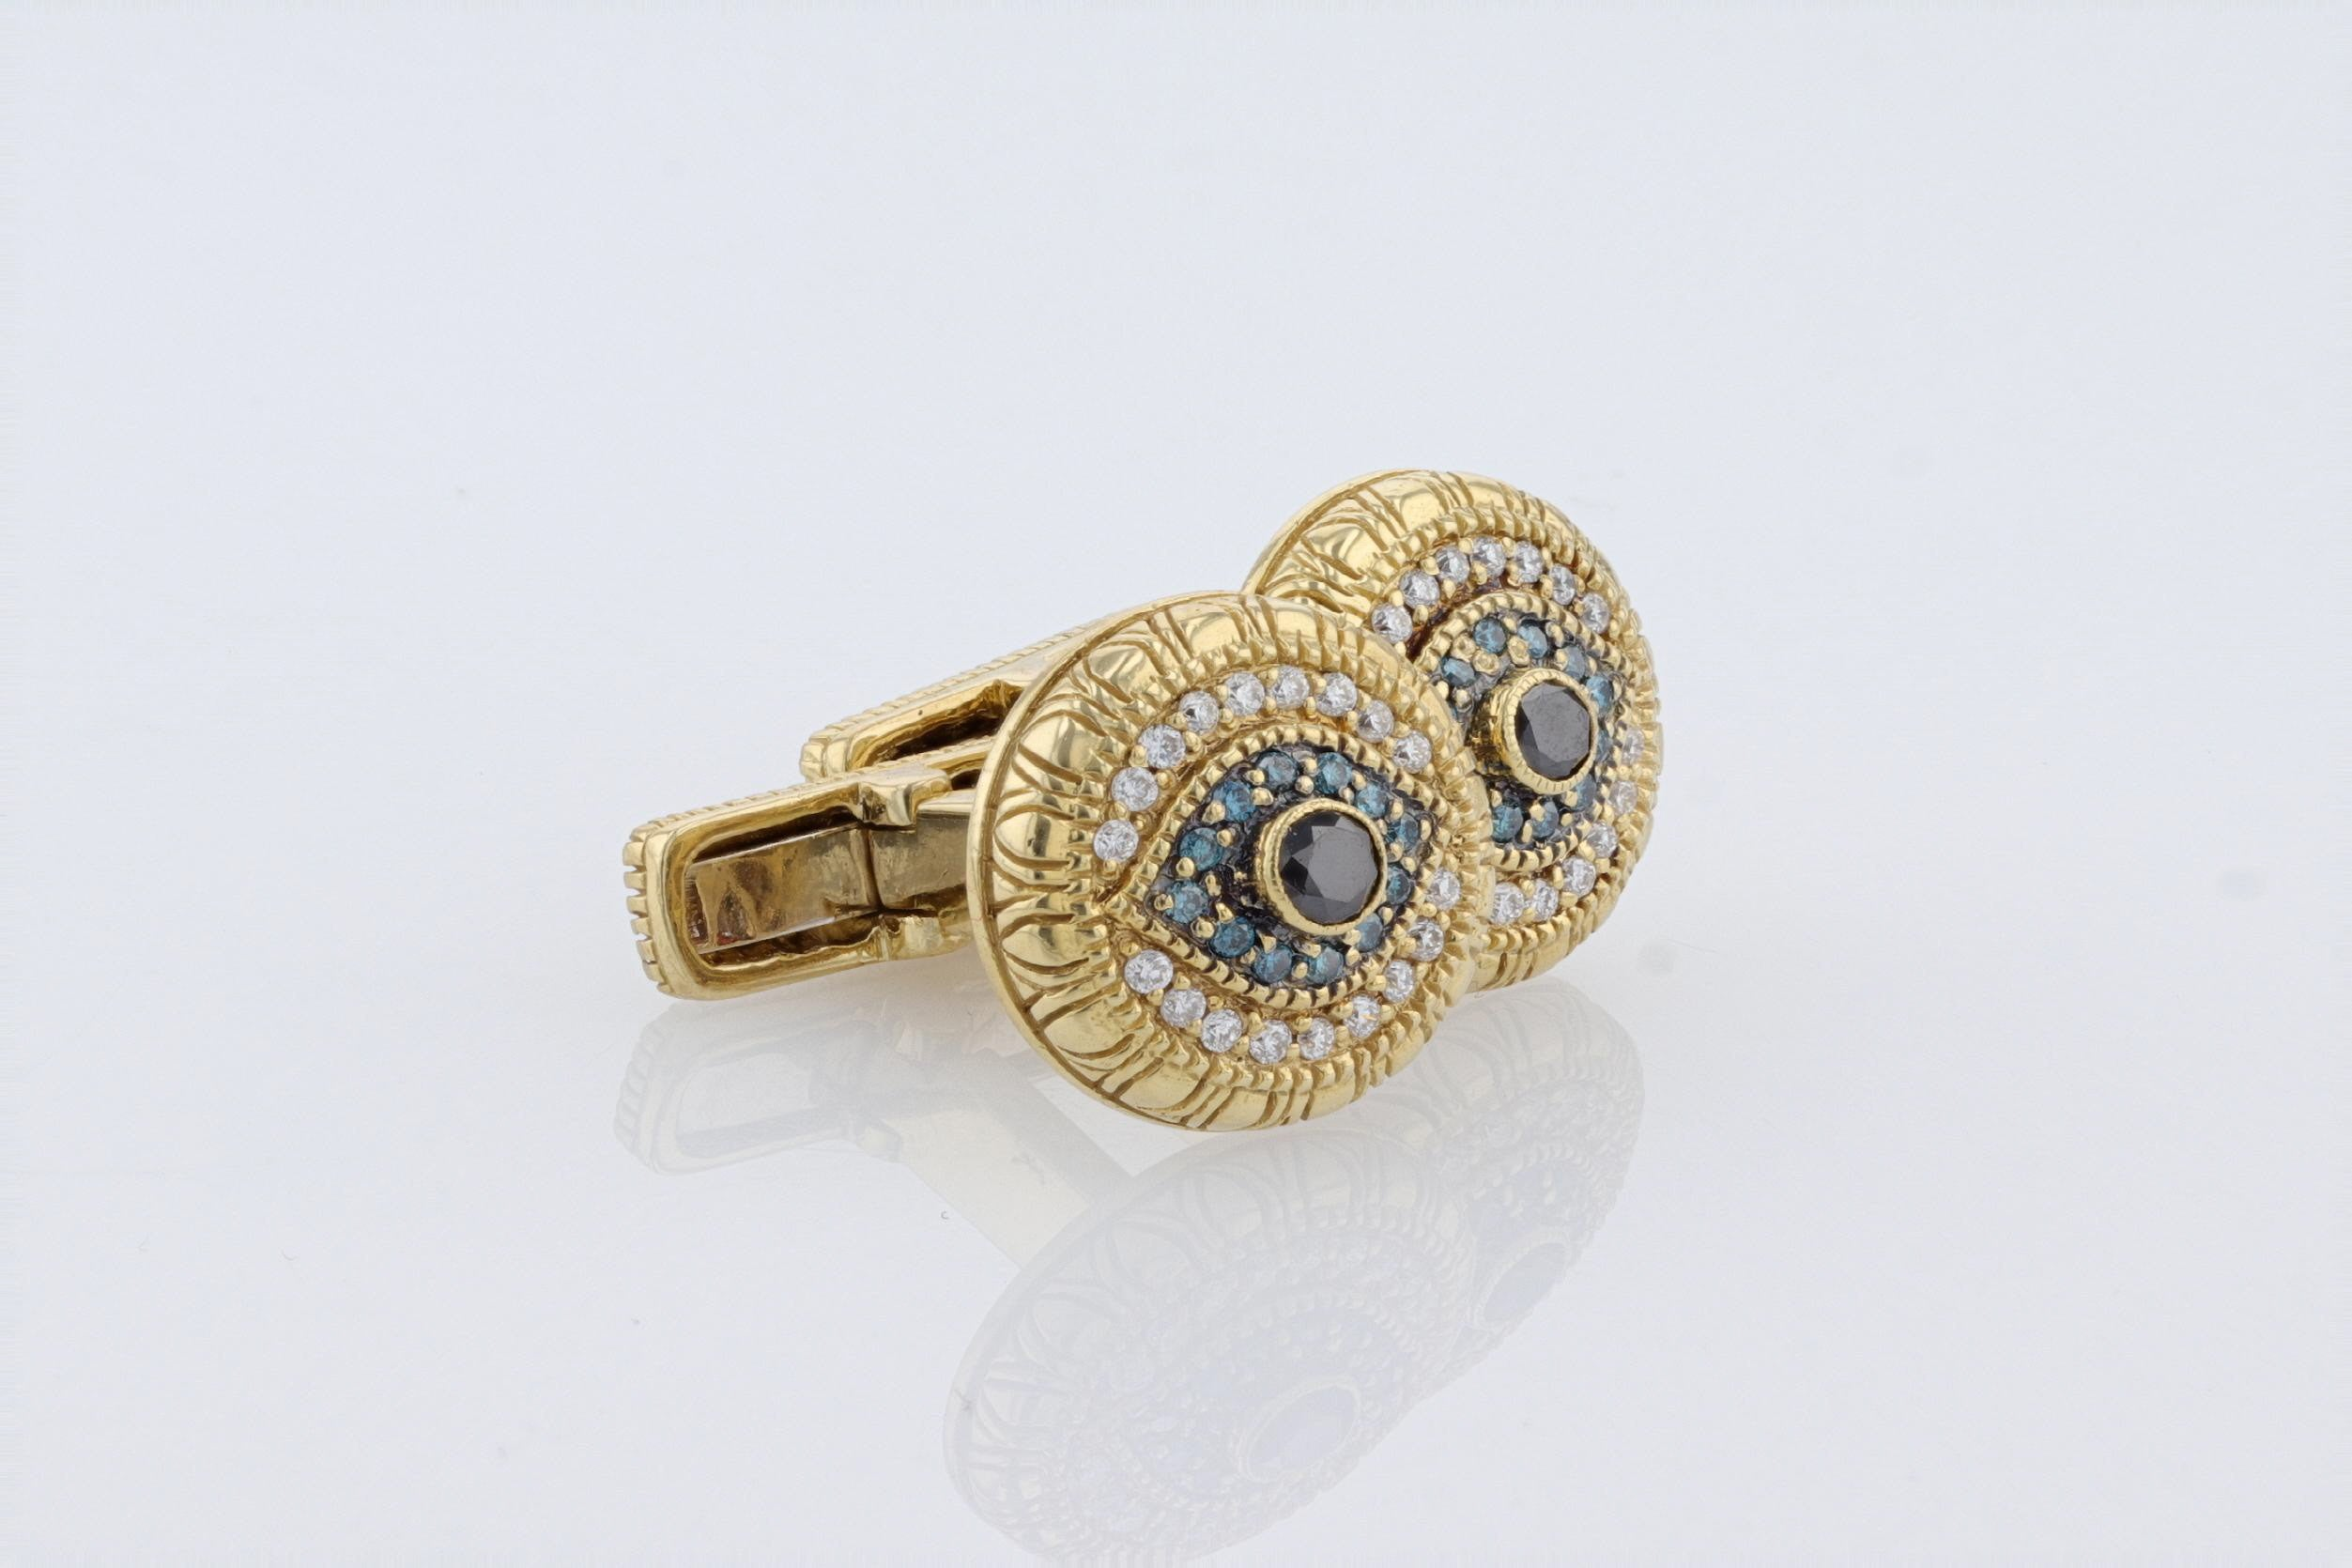 18K Yellow Gold (Stamped) Dress Cuff links